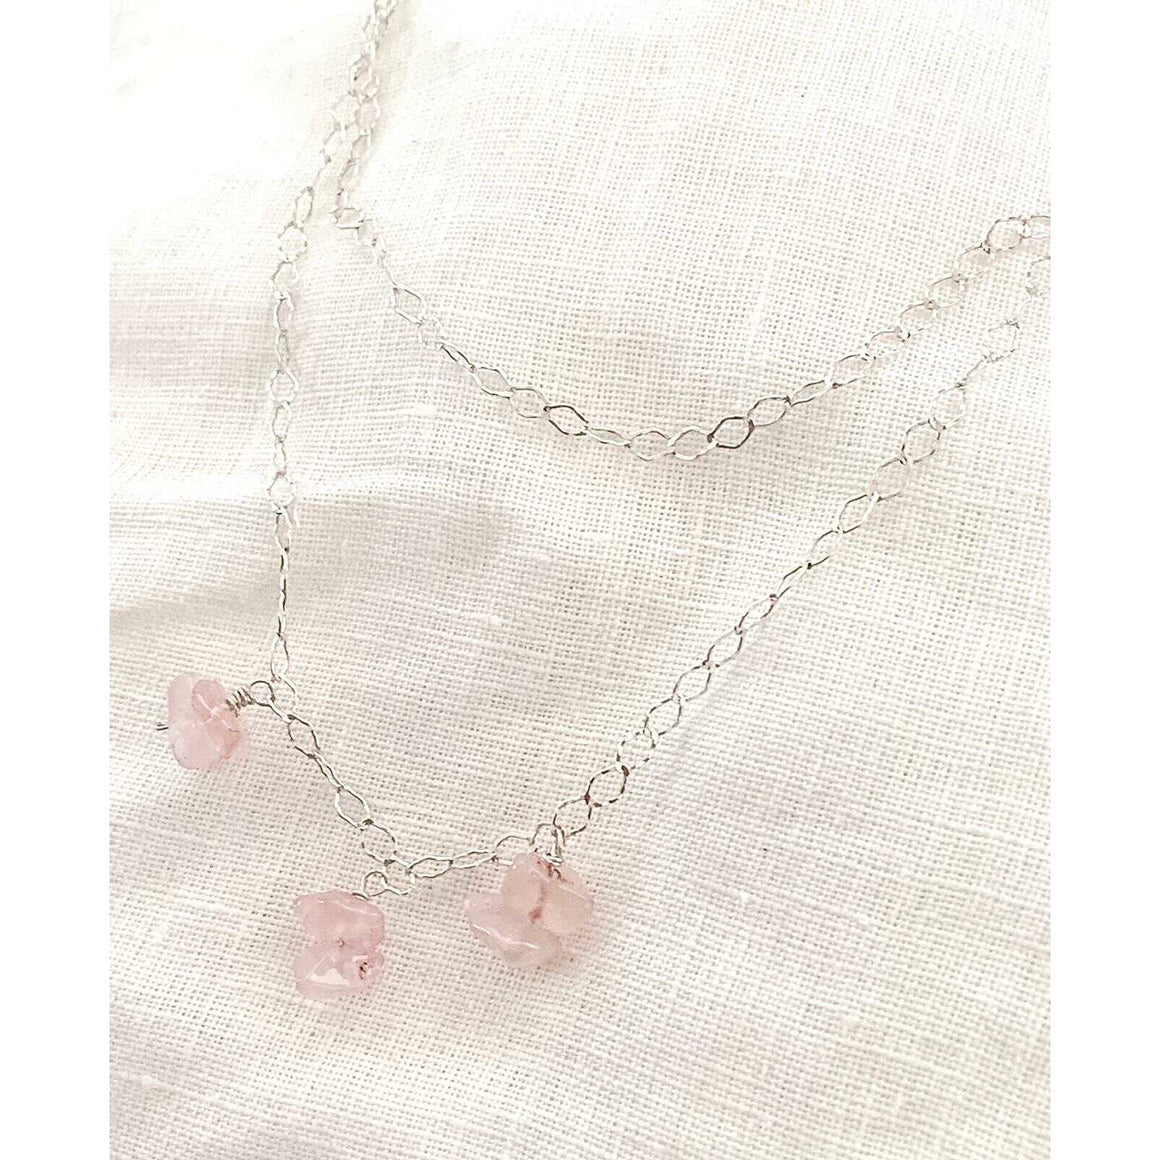 Double silver necklace with rose quartz pendants